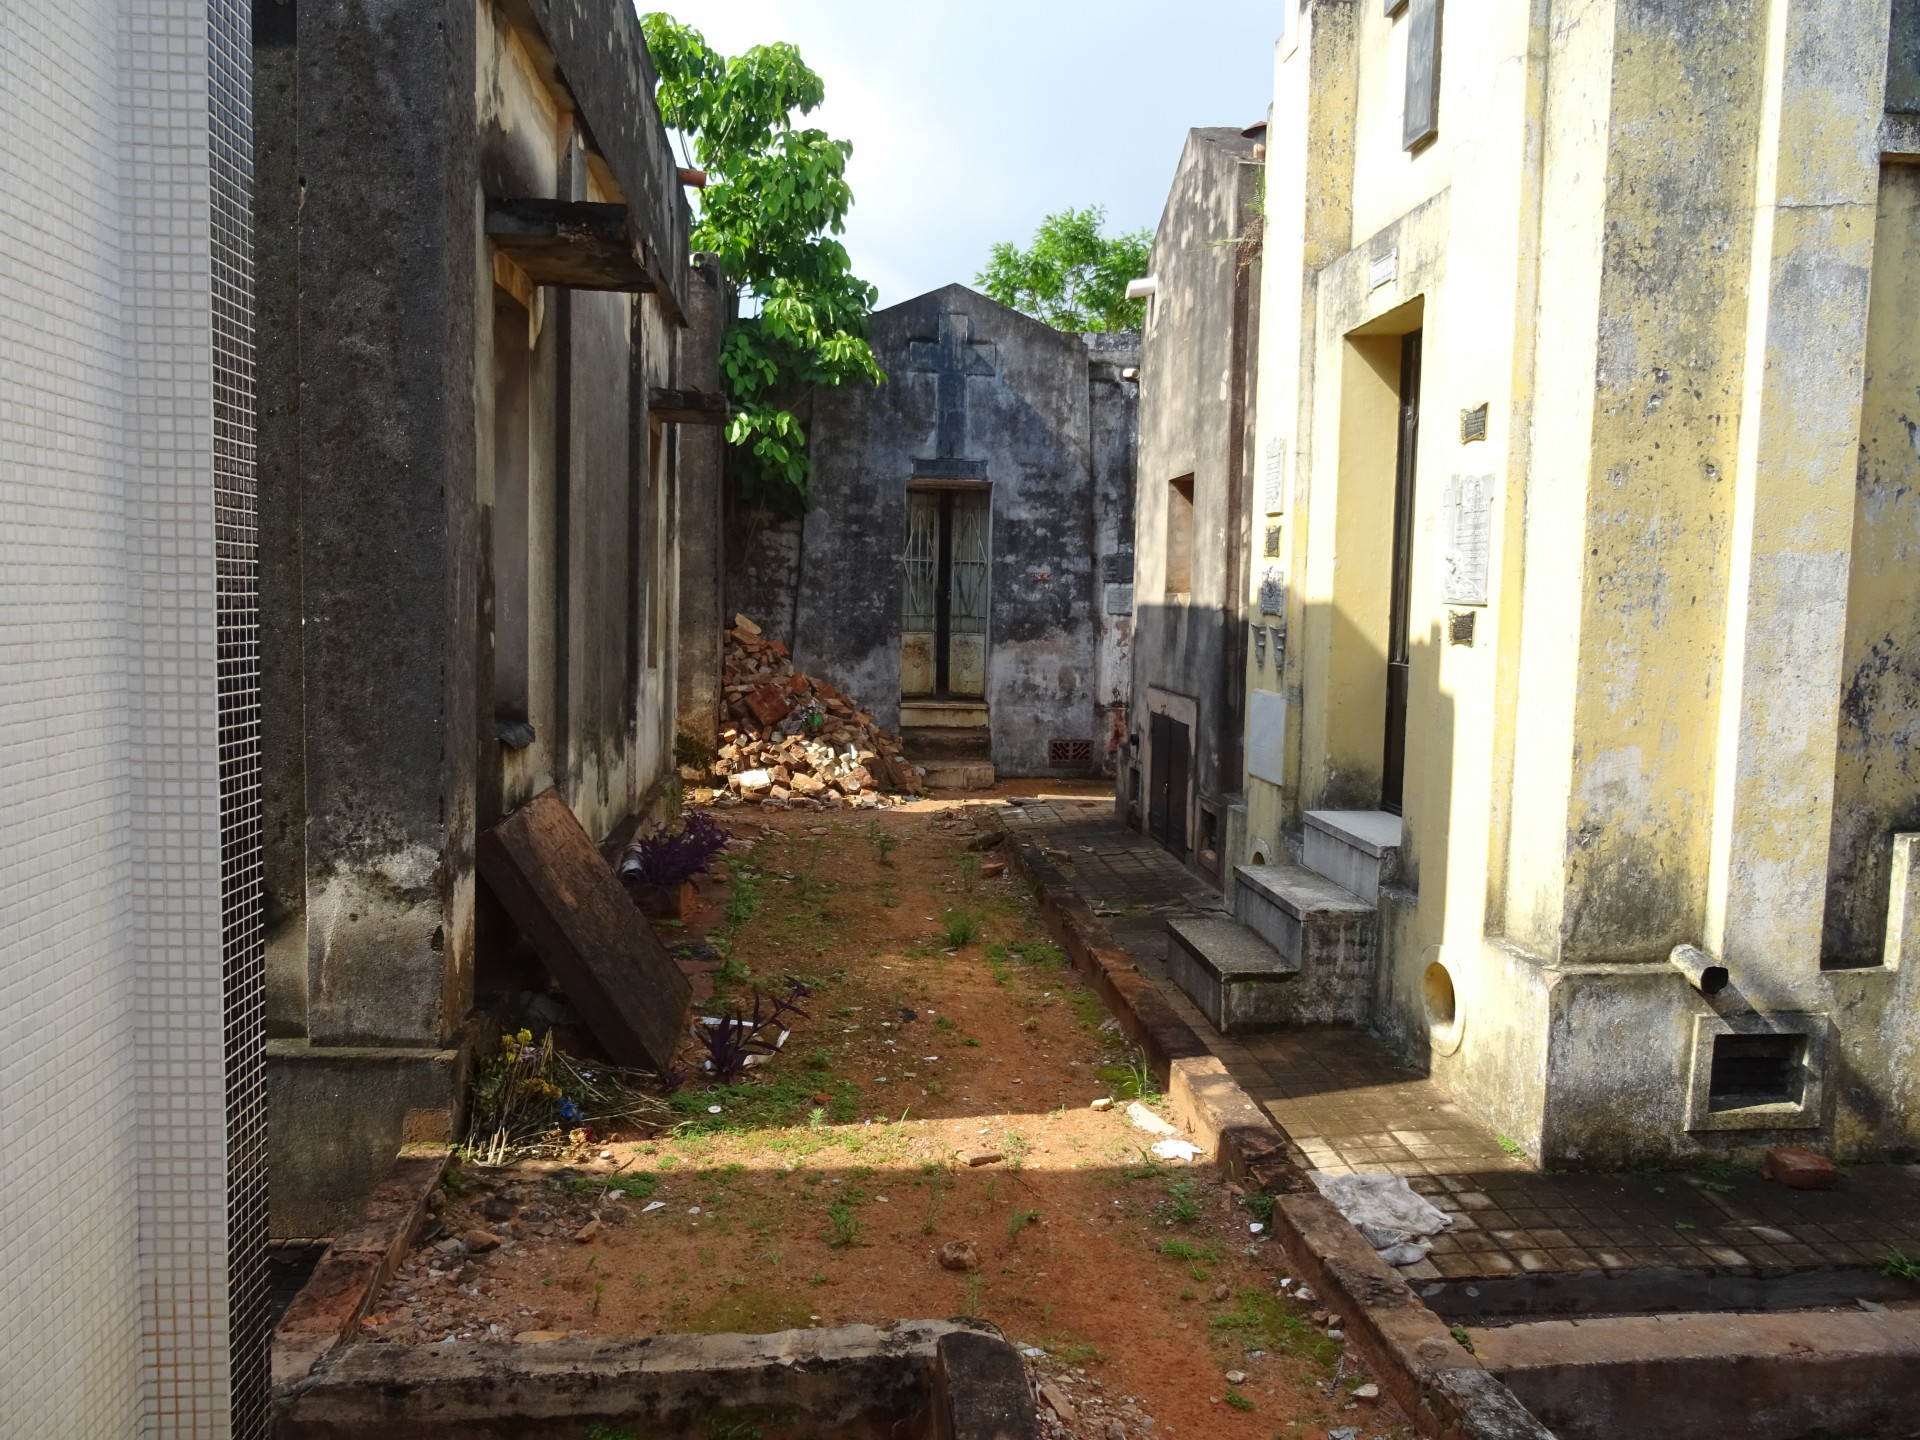 A pungent odour is breaking out of these tombs.